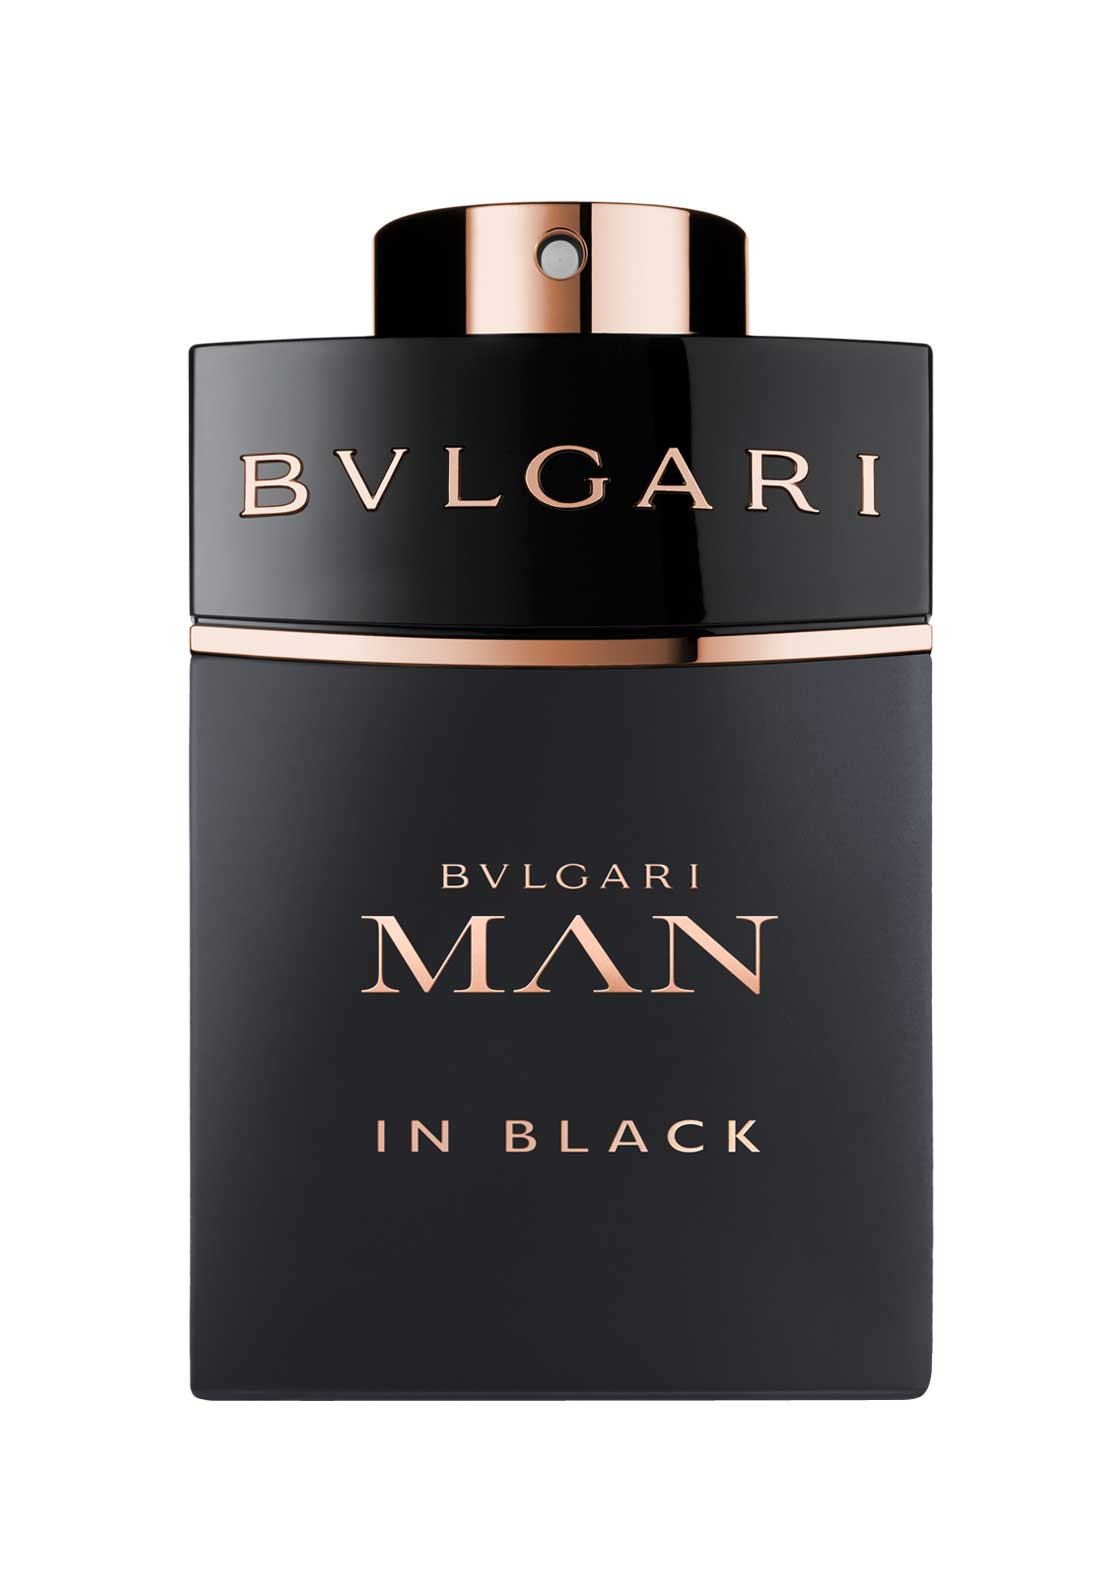 Bvlgari Bvlgari Man in Black for him, 60ml